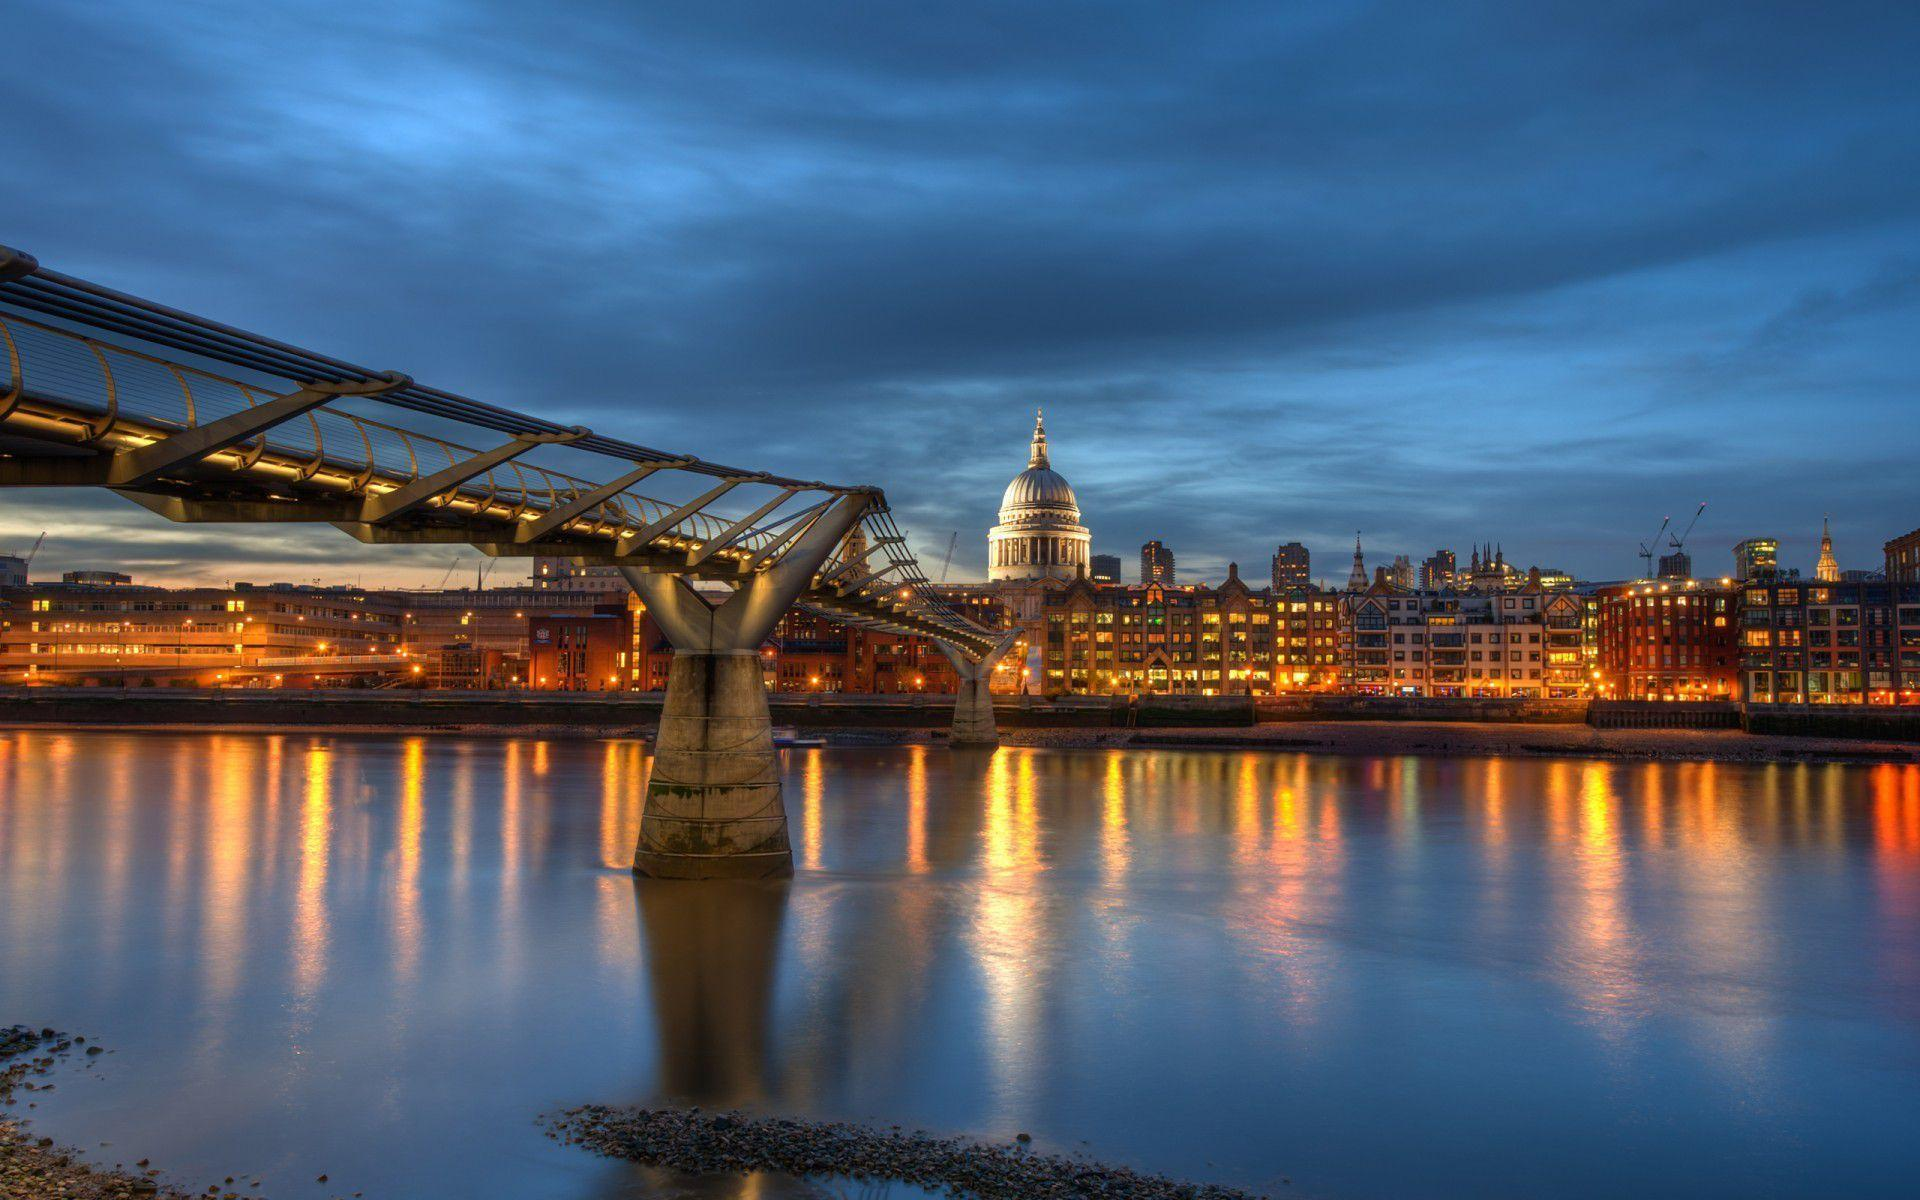 London Millennium Bridge desktop backgrounds